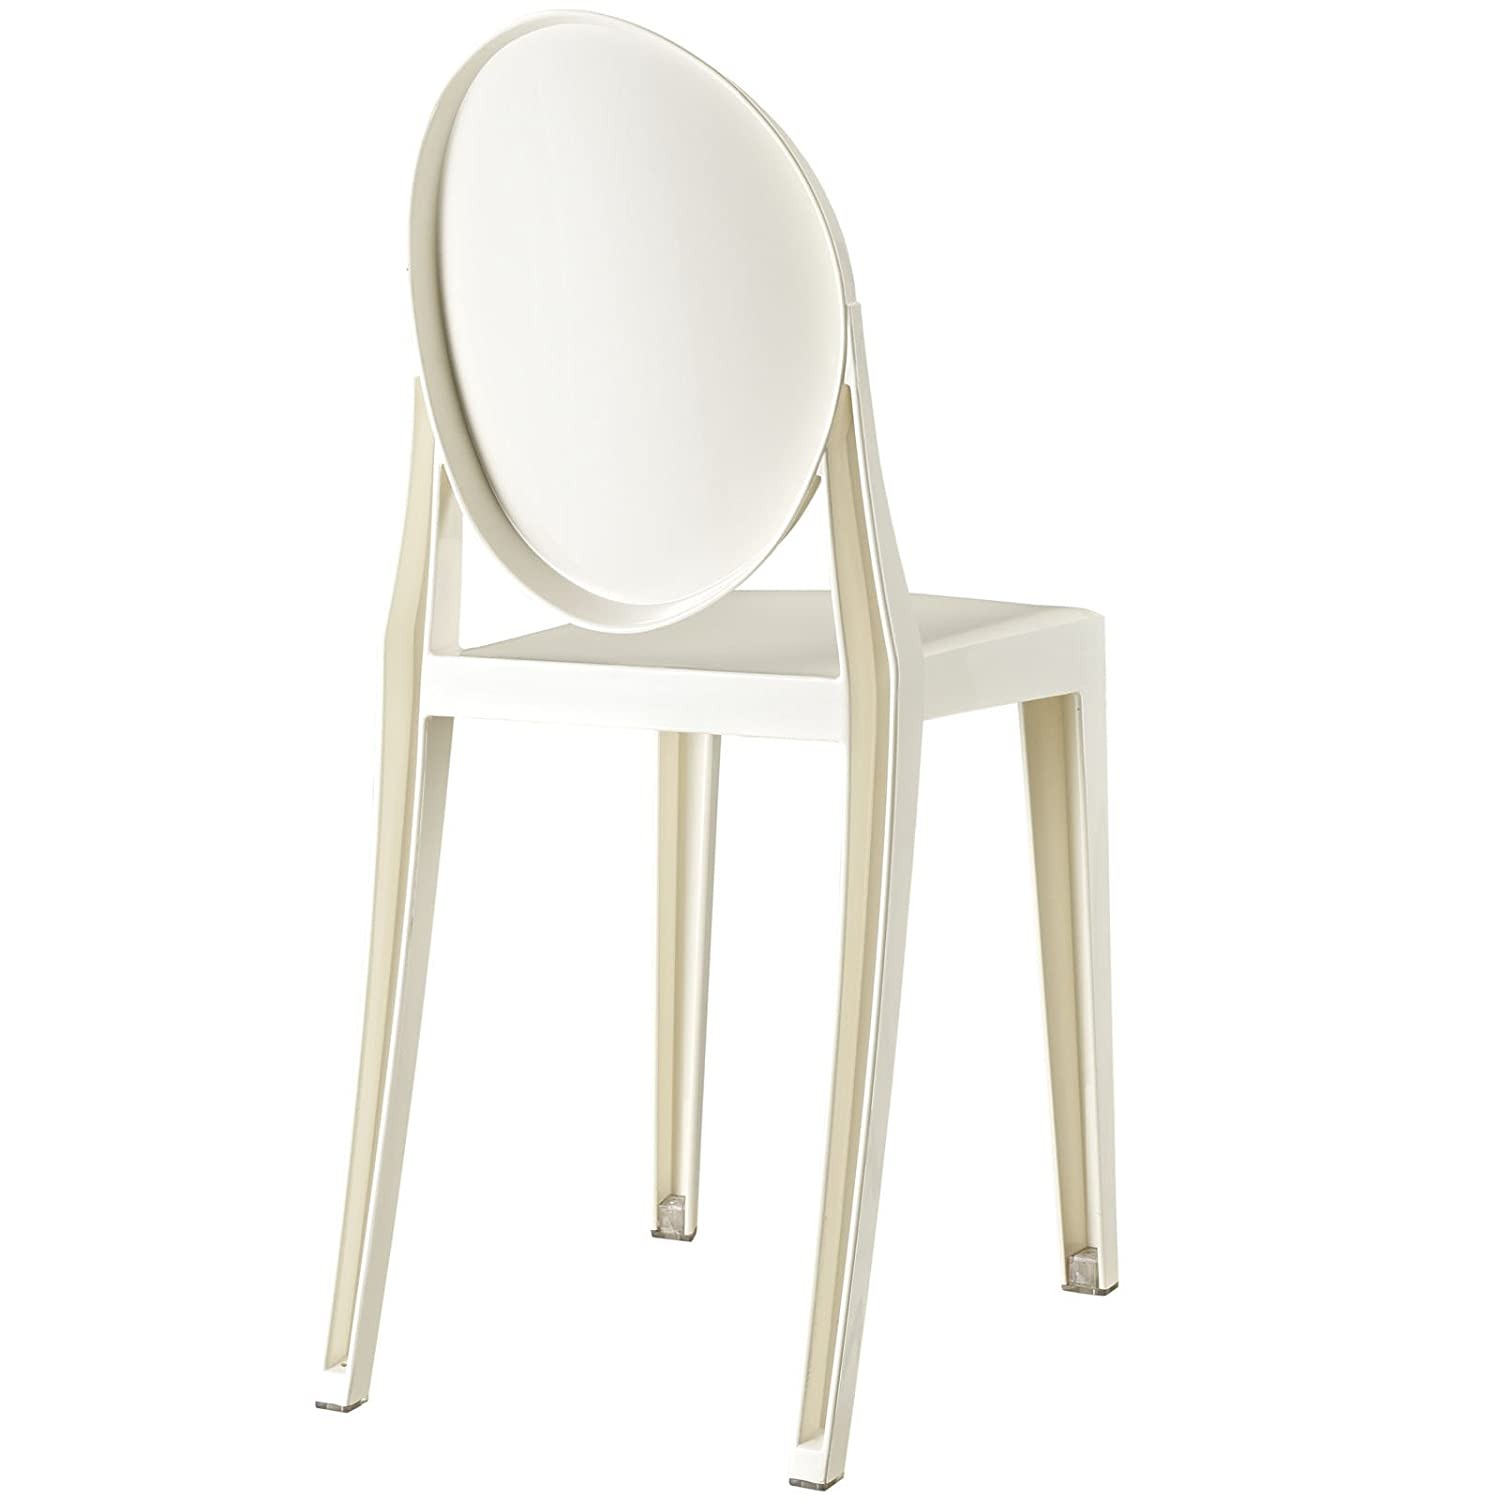 amazoncom  modway casper dining side chair in white  chairs -